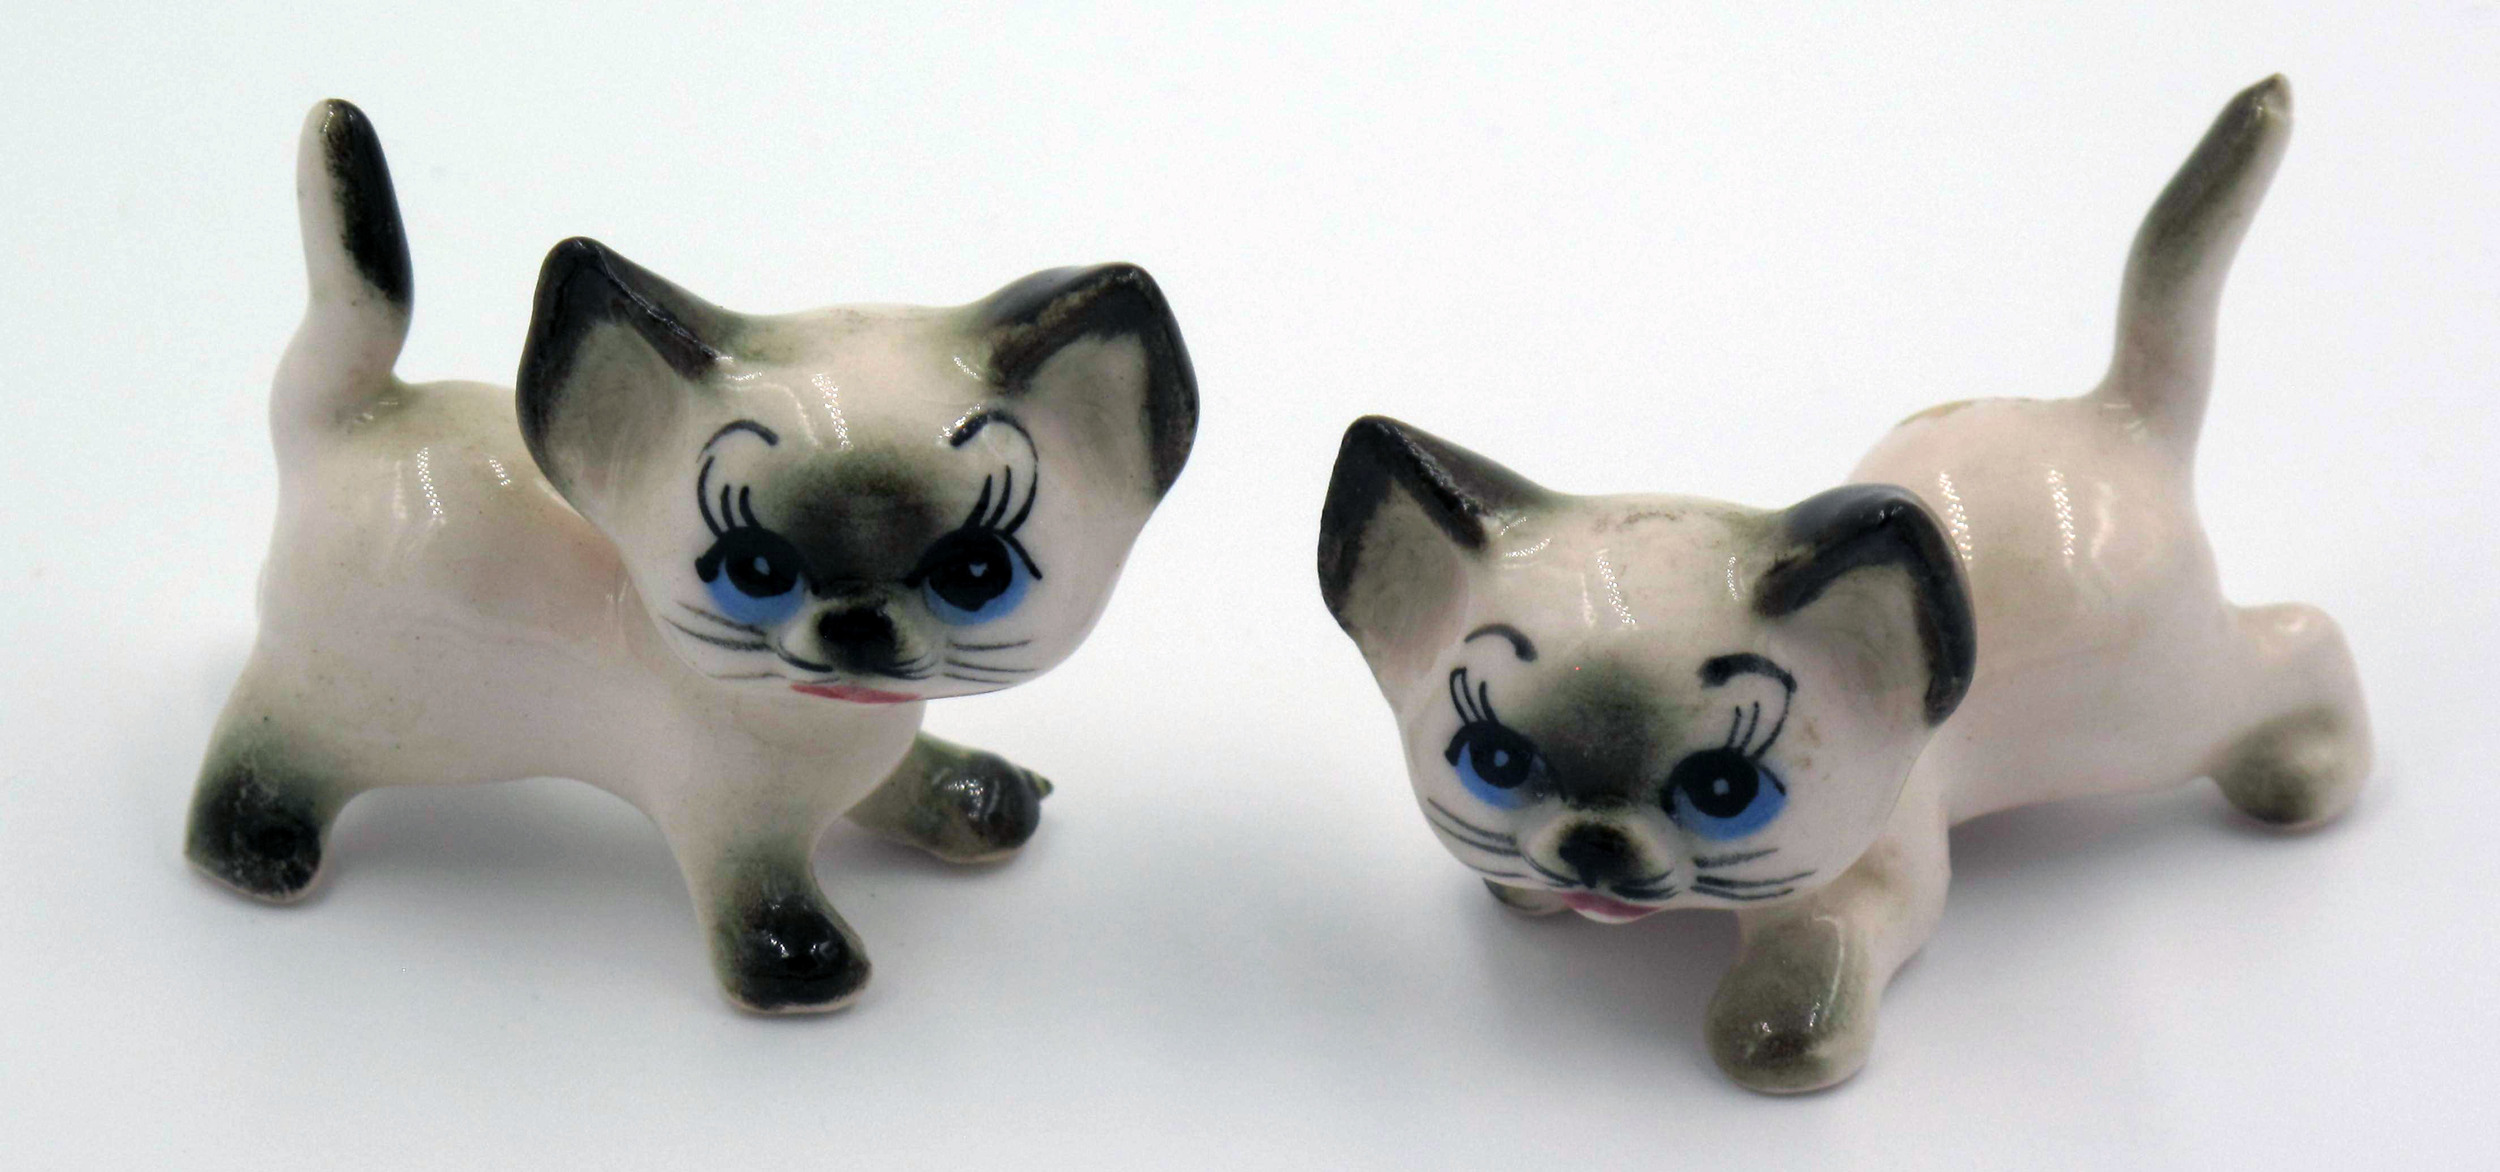 Made in Japan Siamese Cats - Hagen Renaker/Josef Originals Copies?